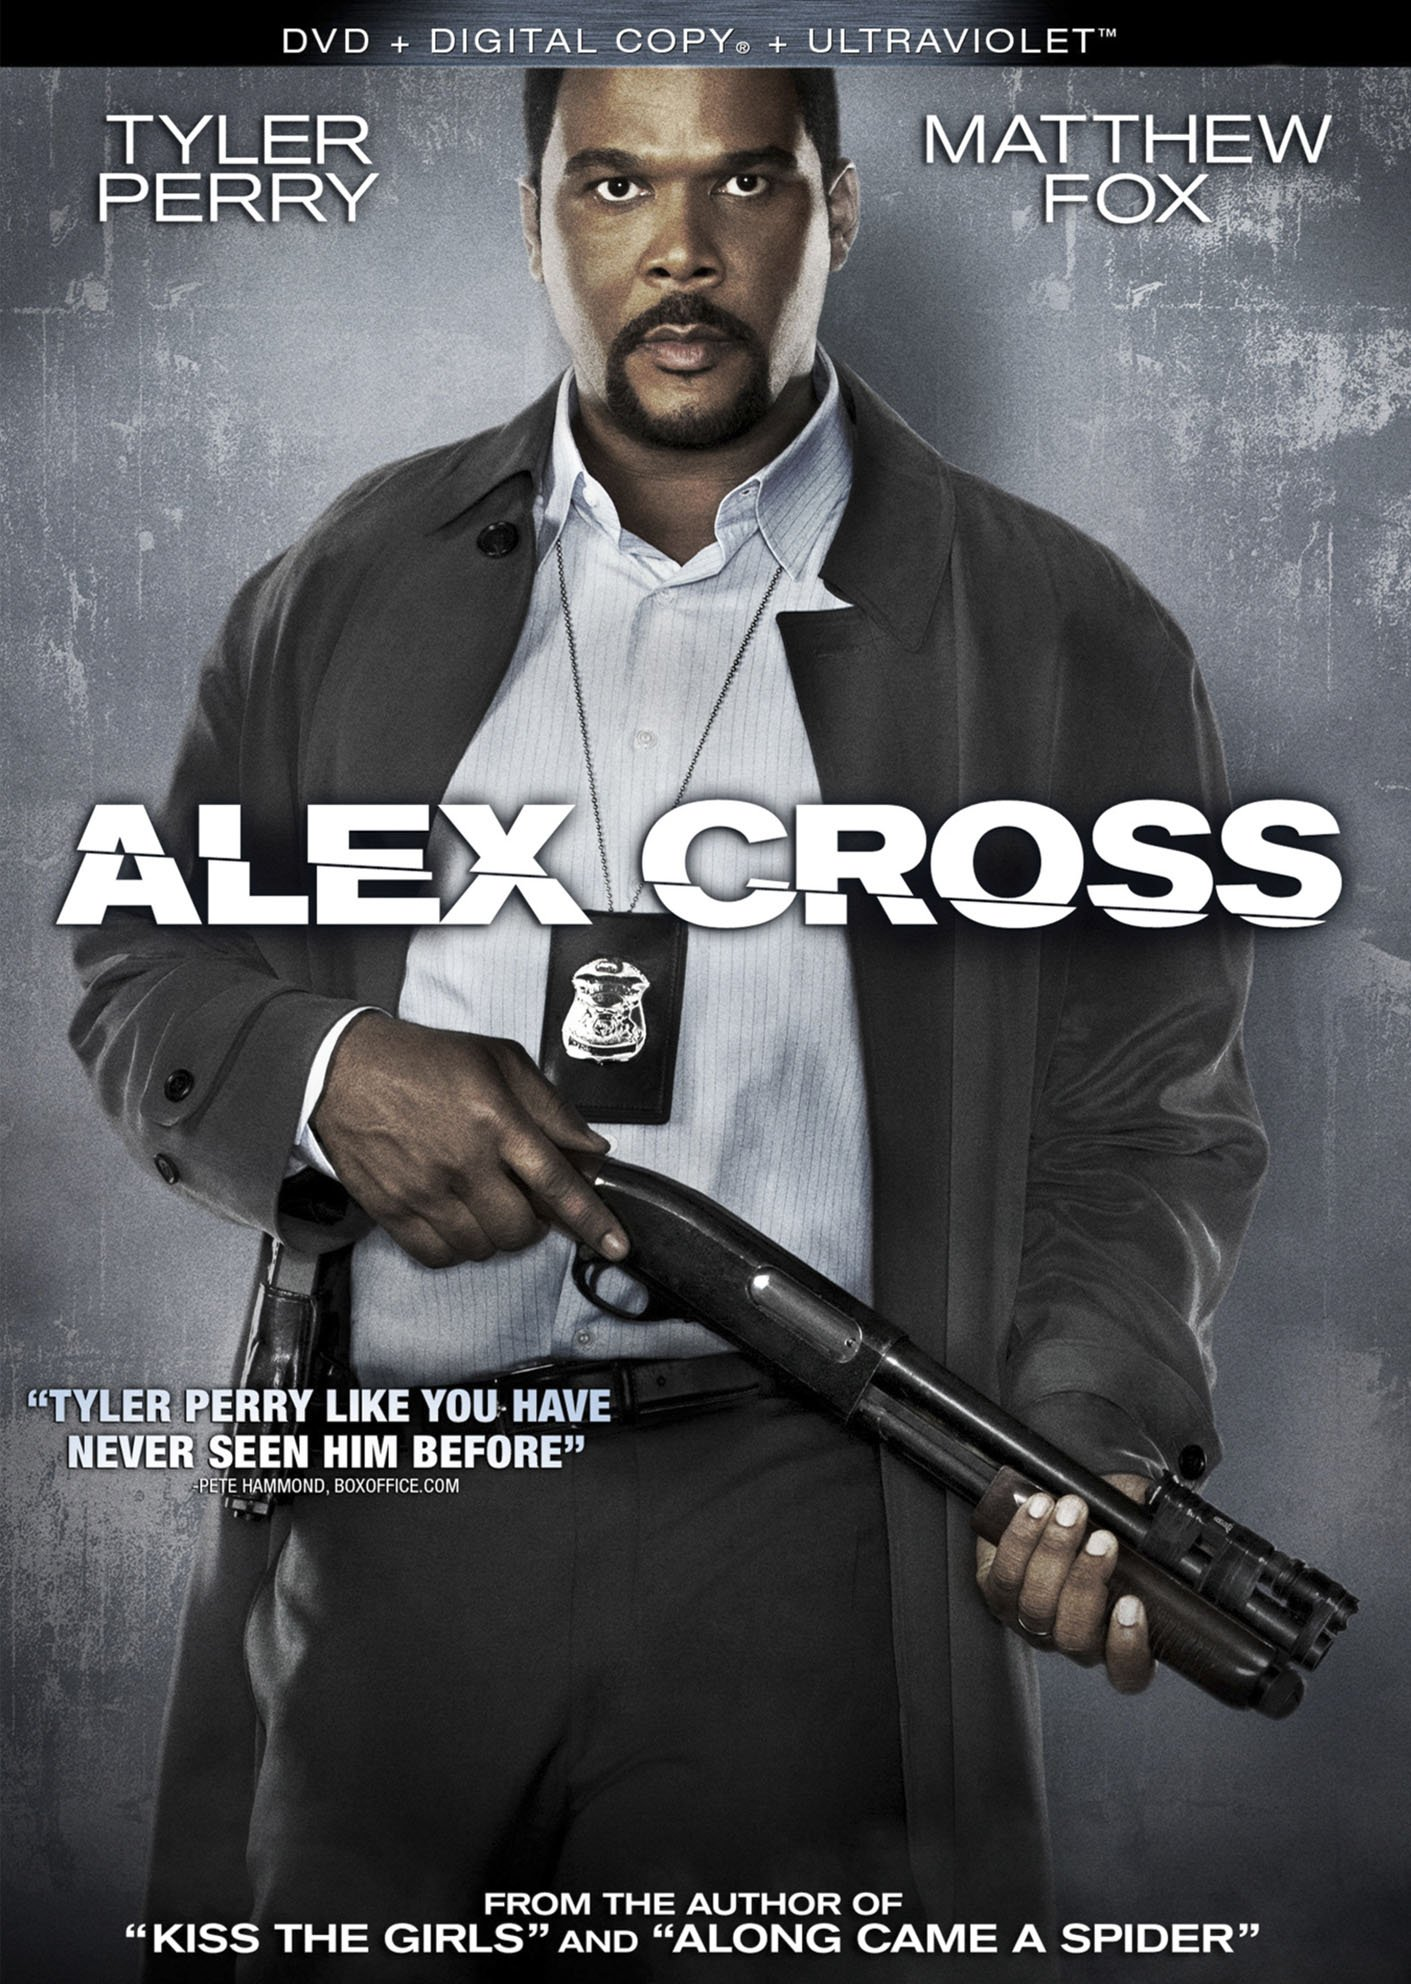 alex-cross-dvd-cover-56